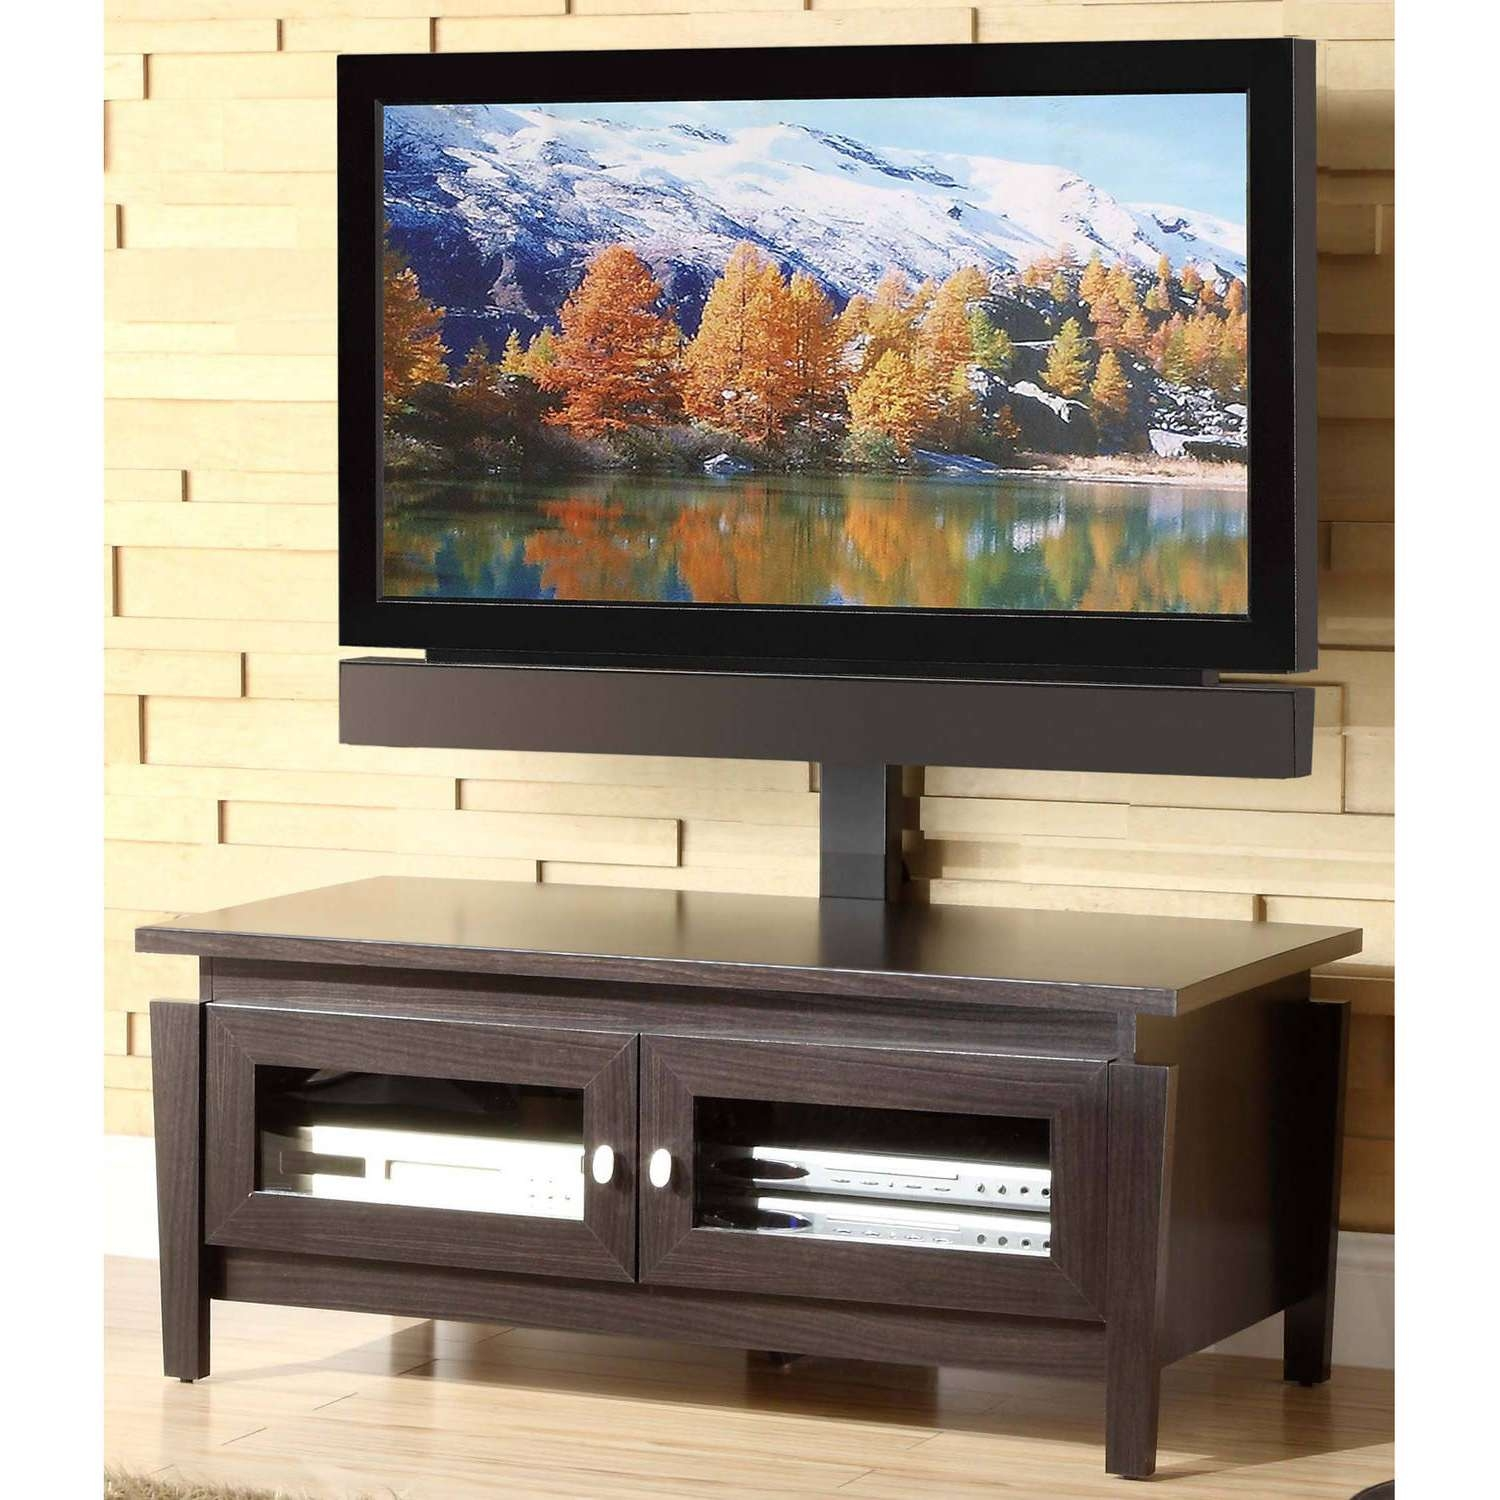 Tv Stand : Da1de92aaf0e 1 Marvelous Tv Stand With Pictures Design With Cordoba Tv Stands (View 5 of 15)